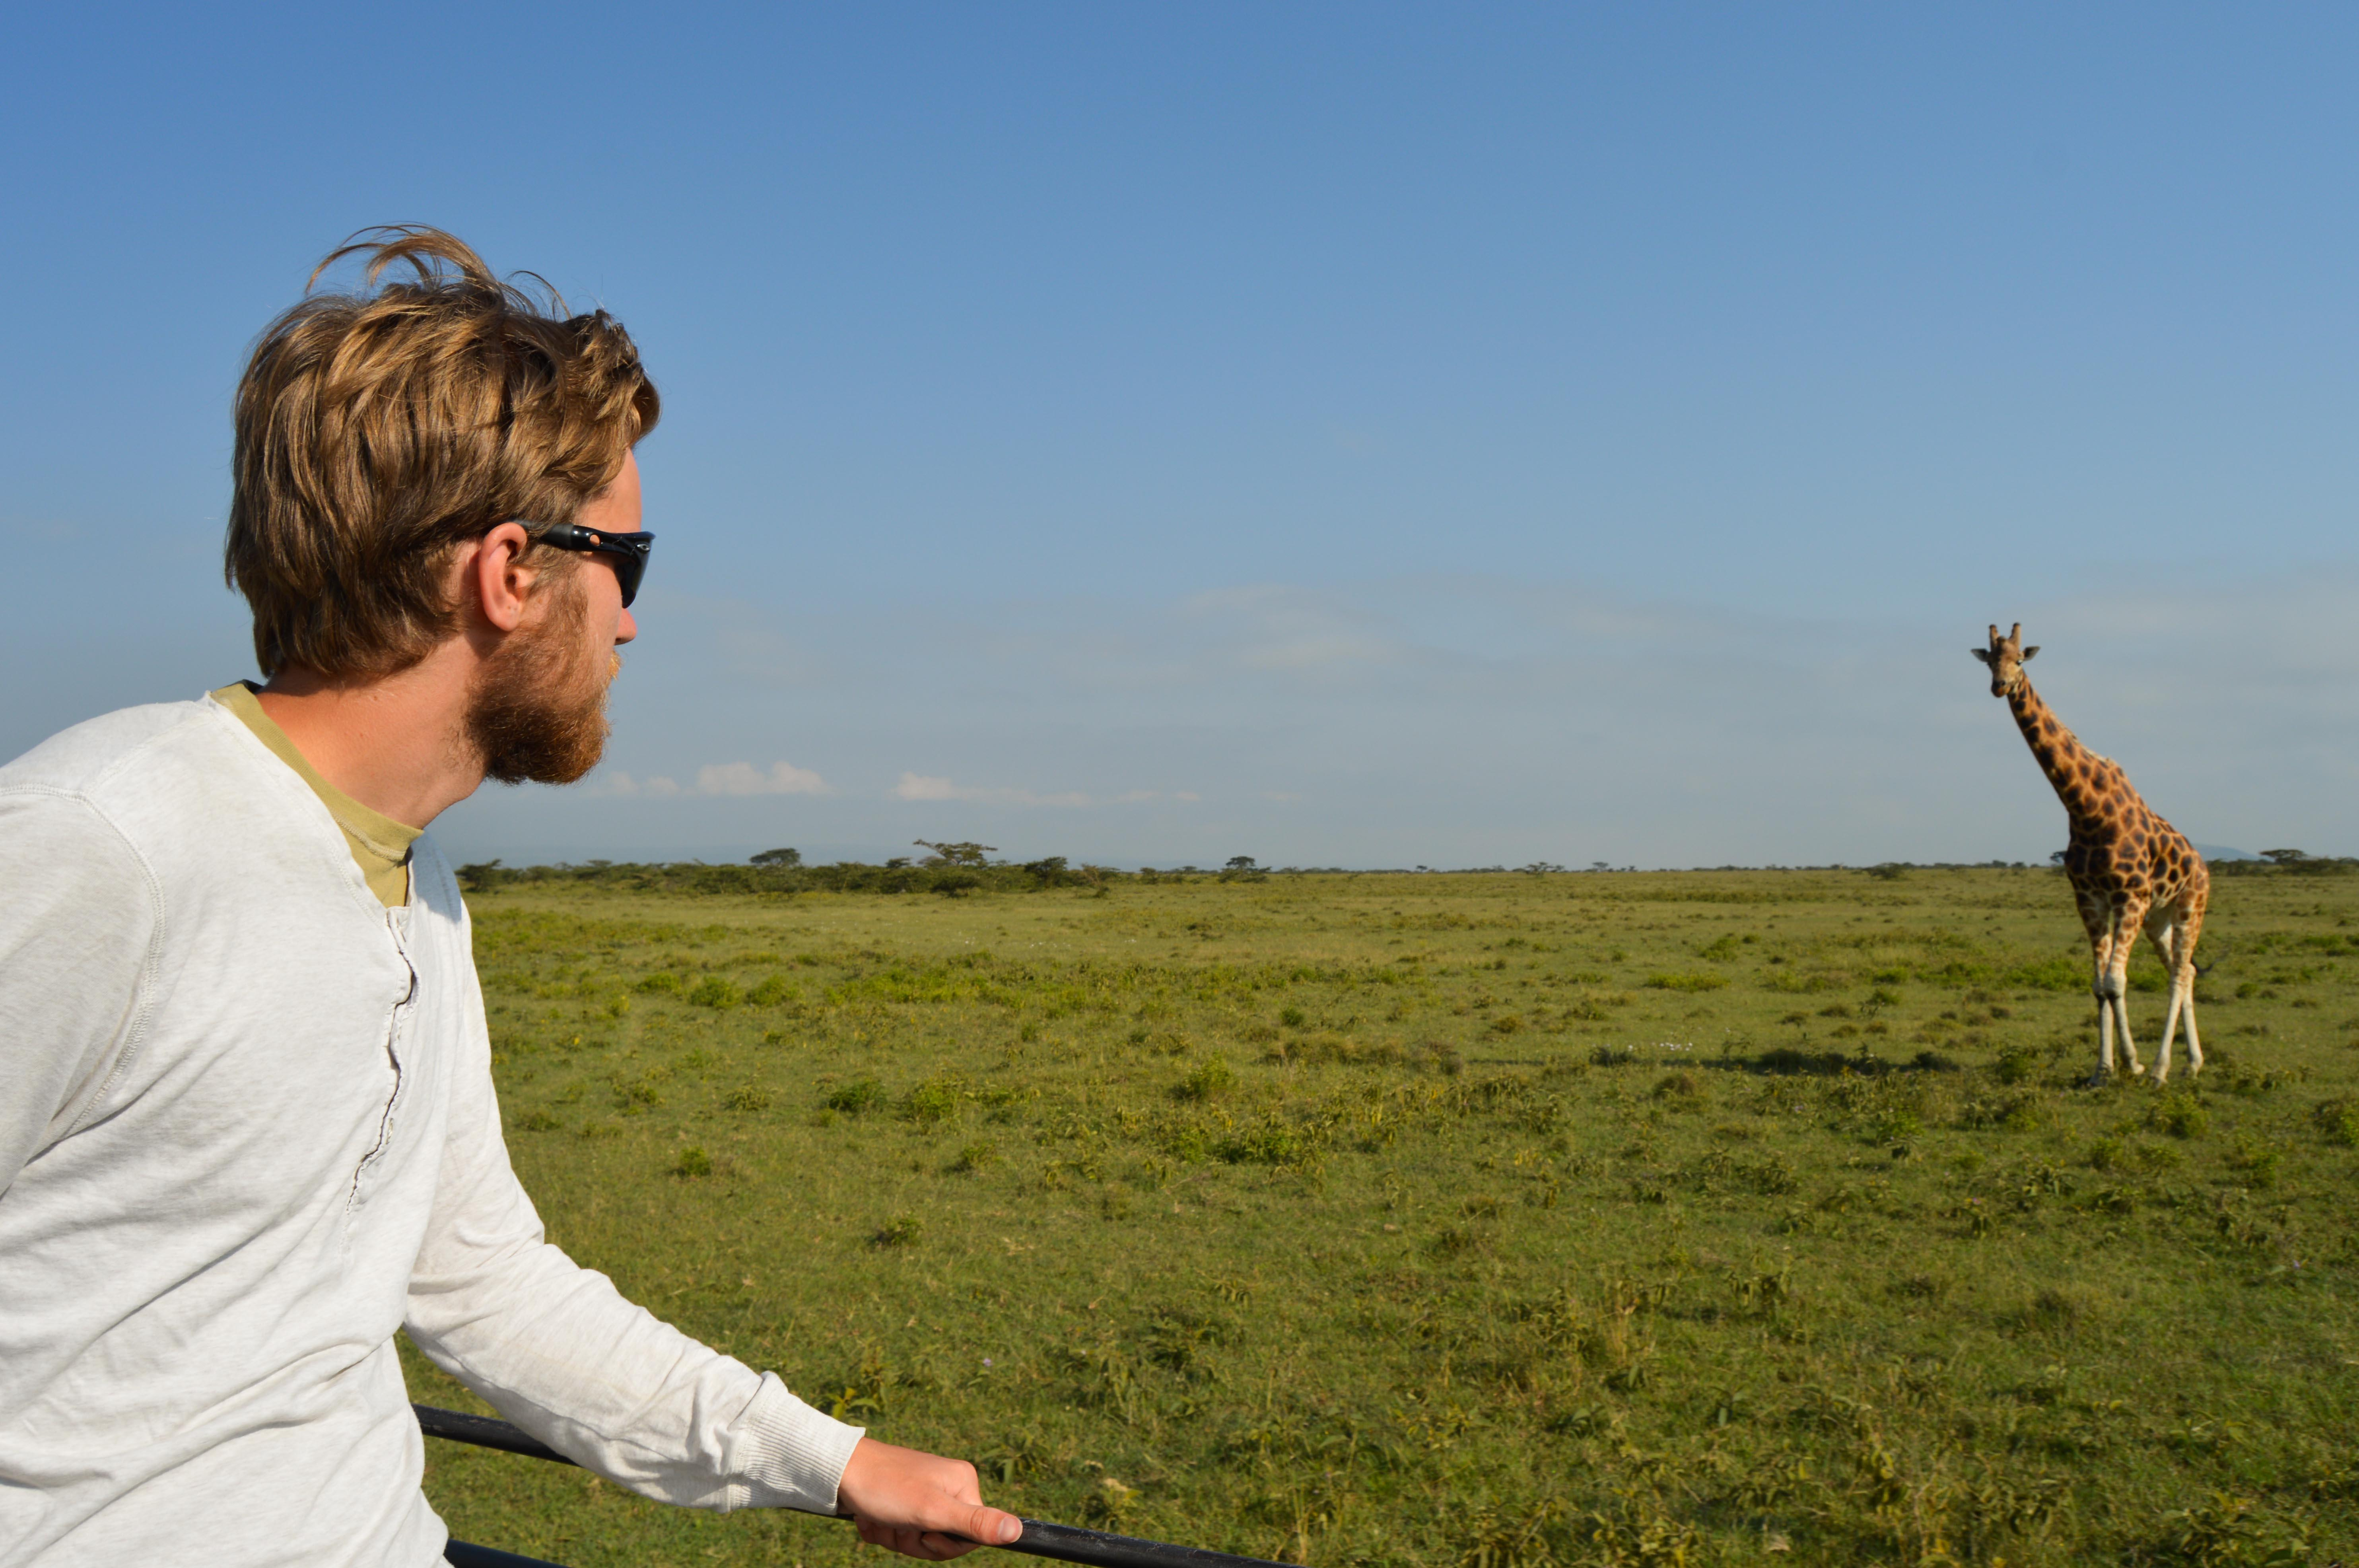 A male Projects Abroad volunteer spots a male giraffe whilst out and taking part in his Wildlife conservation volunteer work in Kenya.